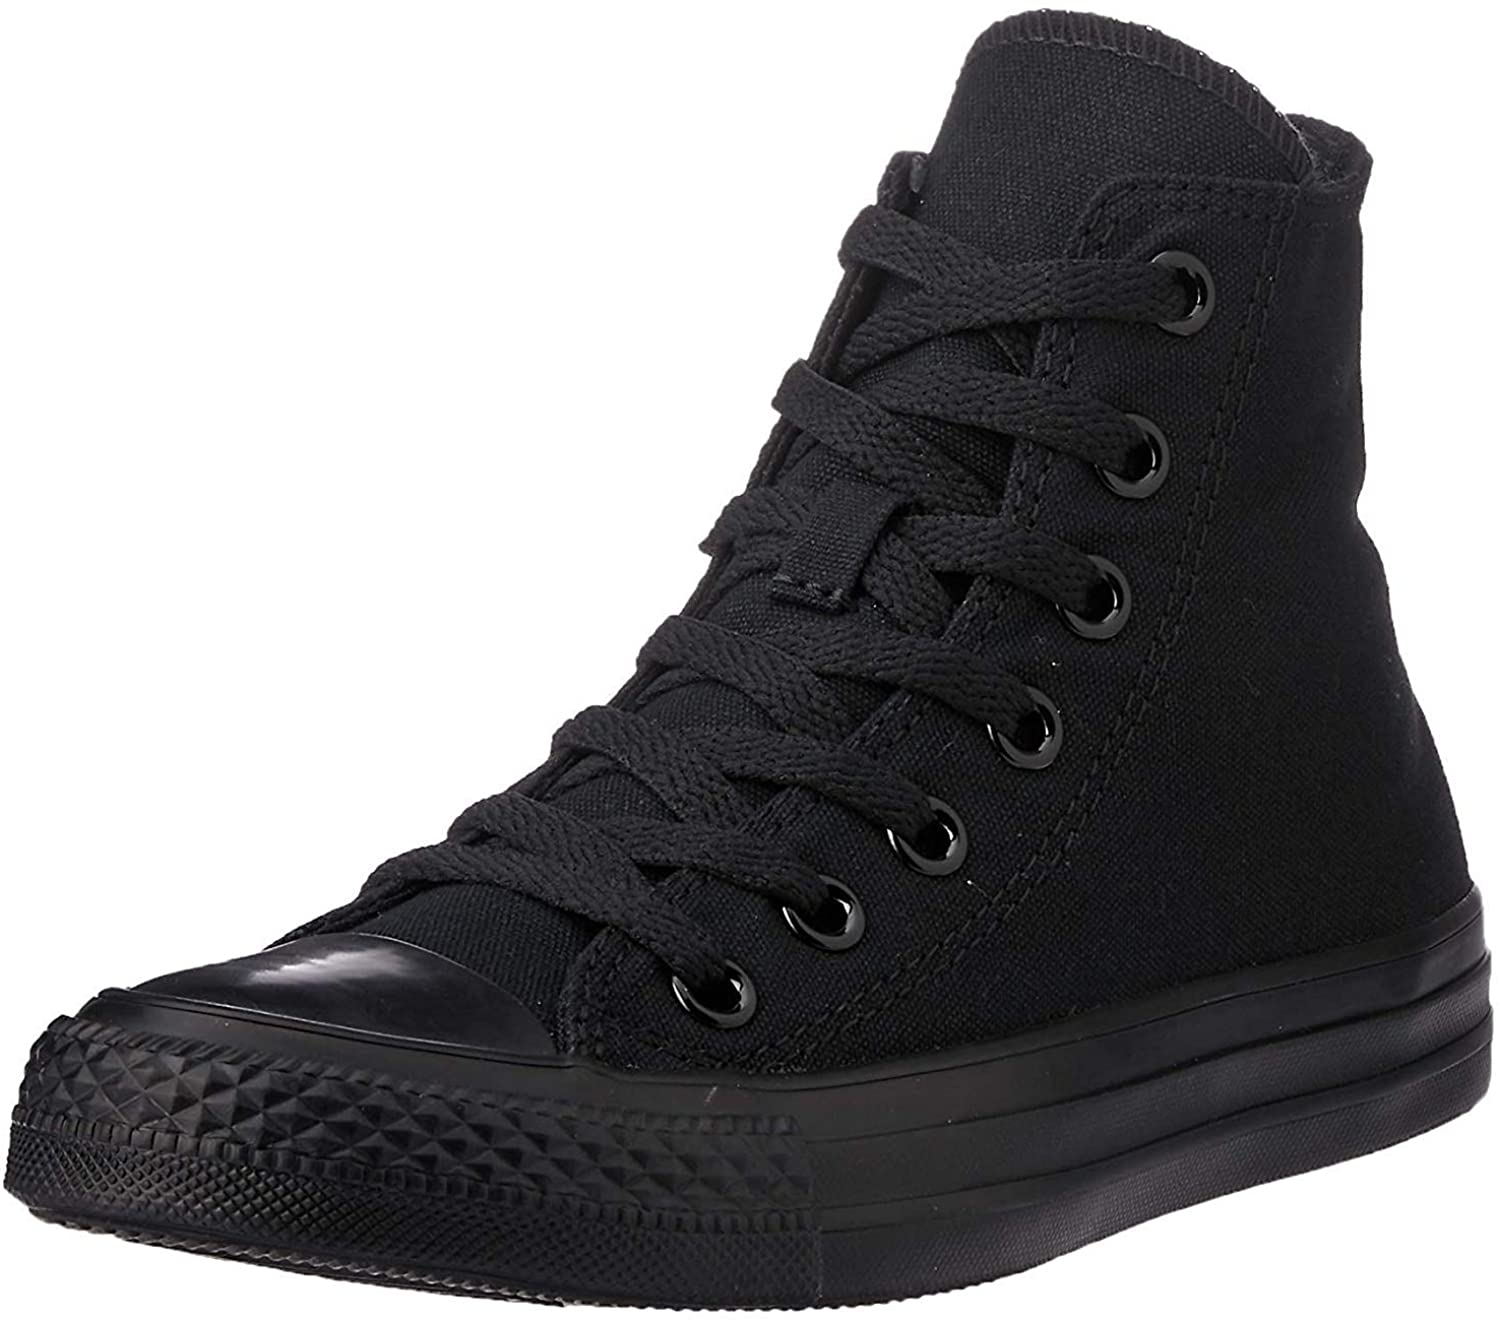 Converse Womens Chuck Taylor All Star High Top Sneakers - Black Monochrome